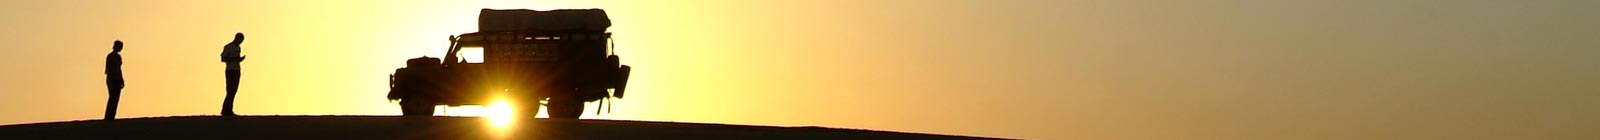 Land Rover against the sun Morocco Banner